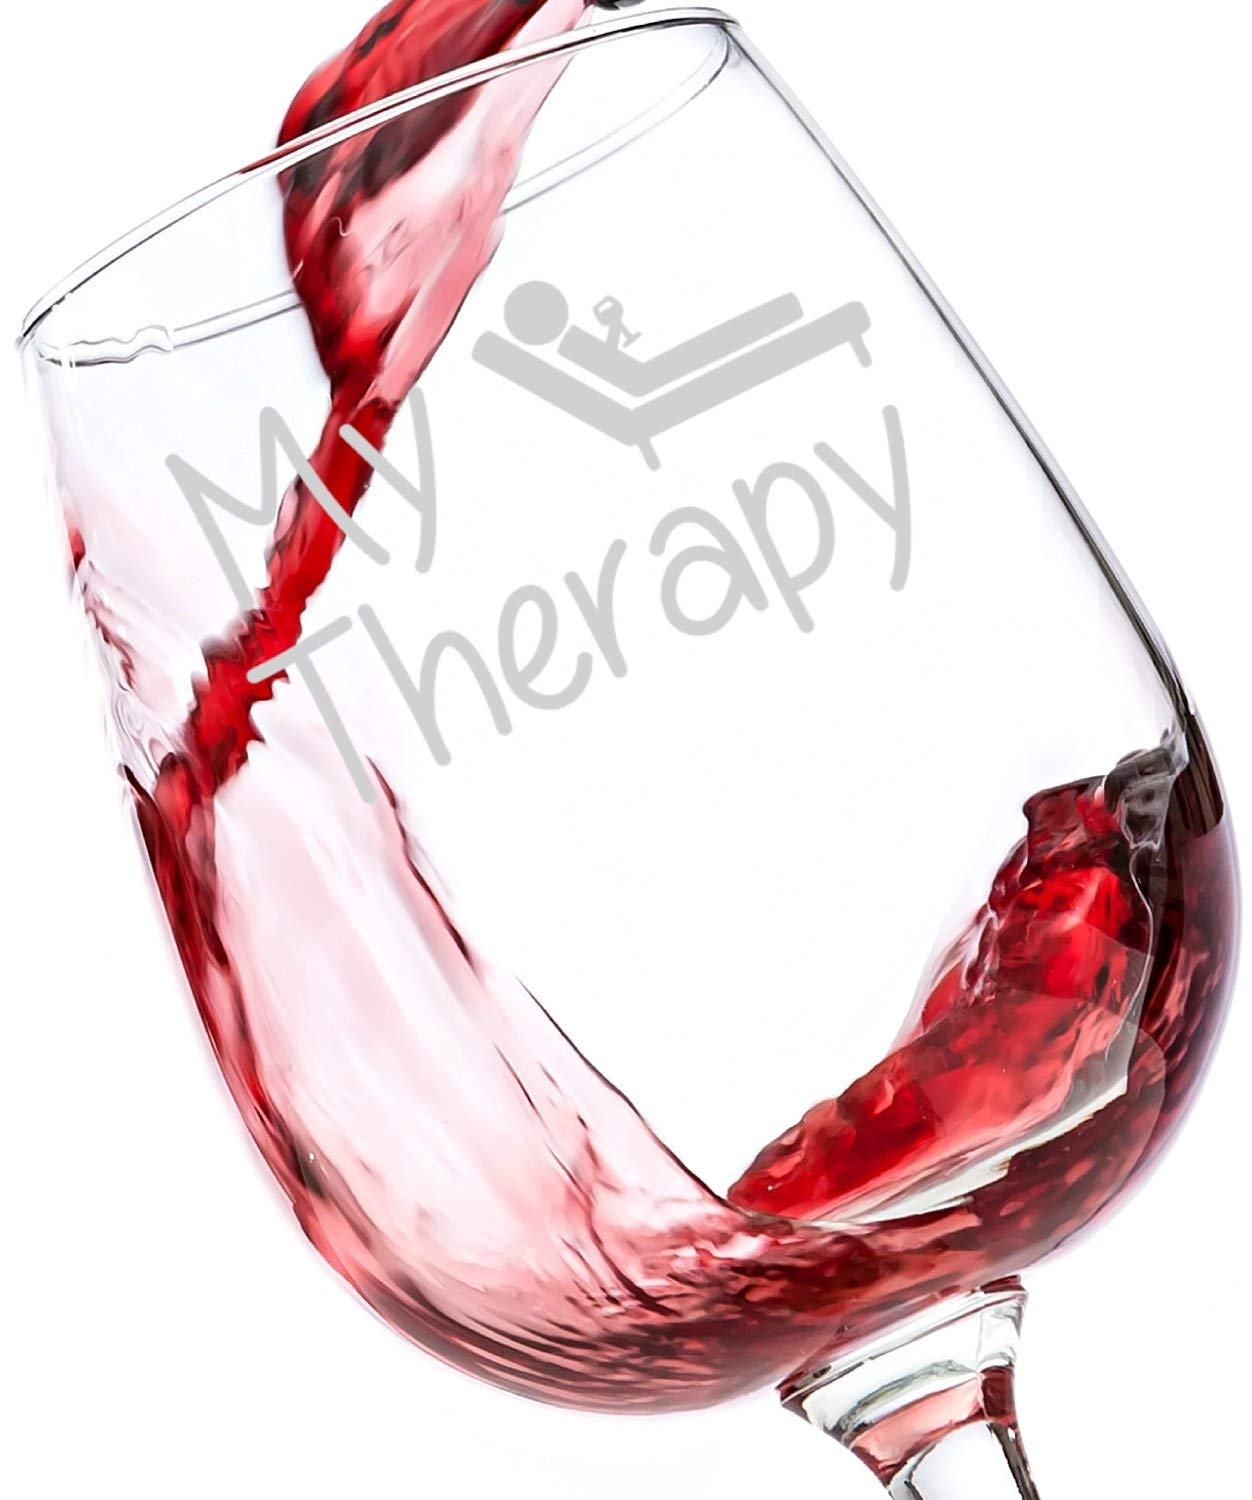 My Therapy Funny Wine Glass 13 oz - Best Christmas Gifts For Women - Unique Gift For Her - Novelty Birthday Present Idea For Mom, Wife, Girlfriend, Sister, Friend, Boss, Coworker, Adult Daughter Got Me Tipsy MTWG